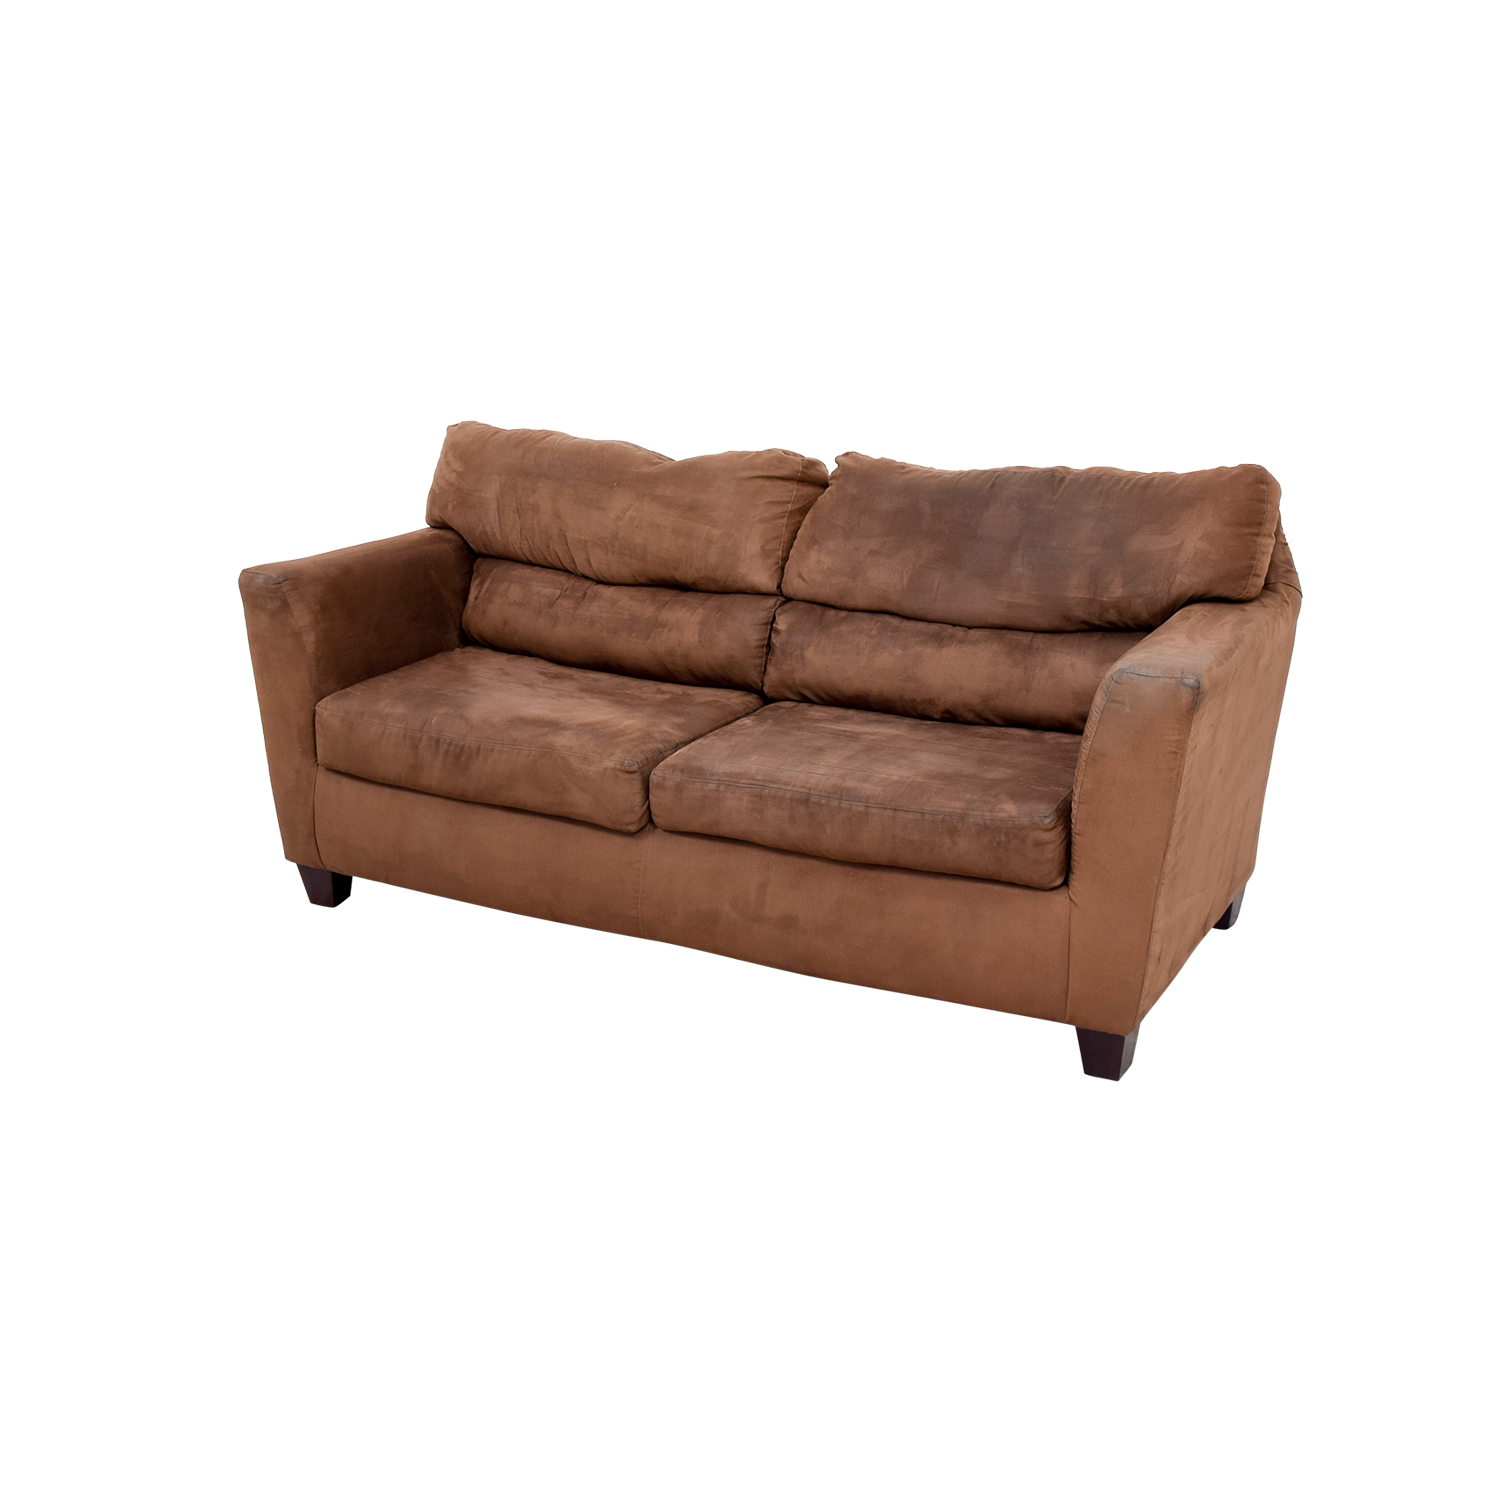 Sofa S 90% Off - Bob's Furniture Bob's Furniture Brown Two